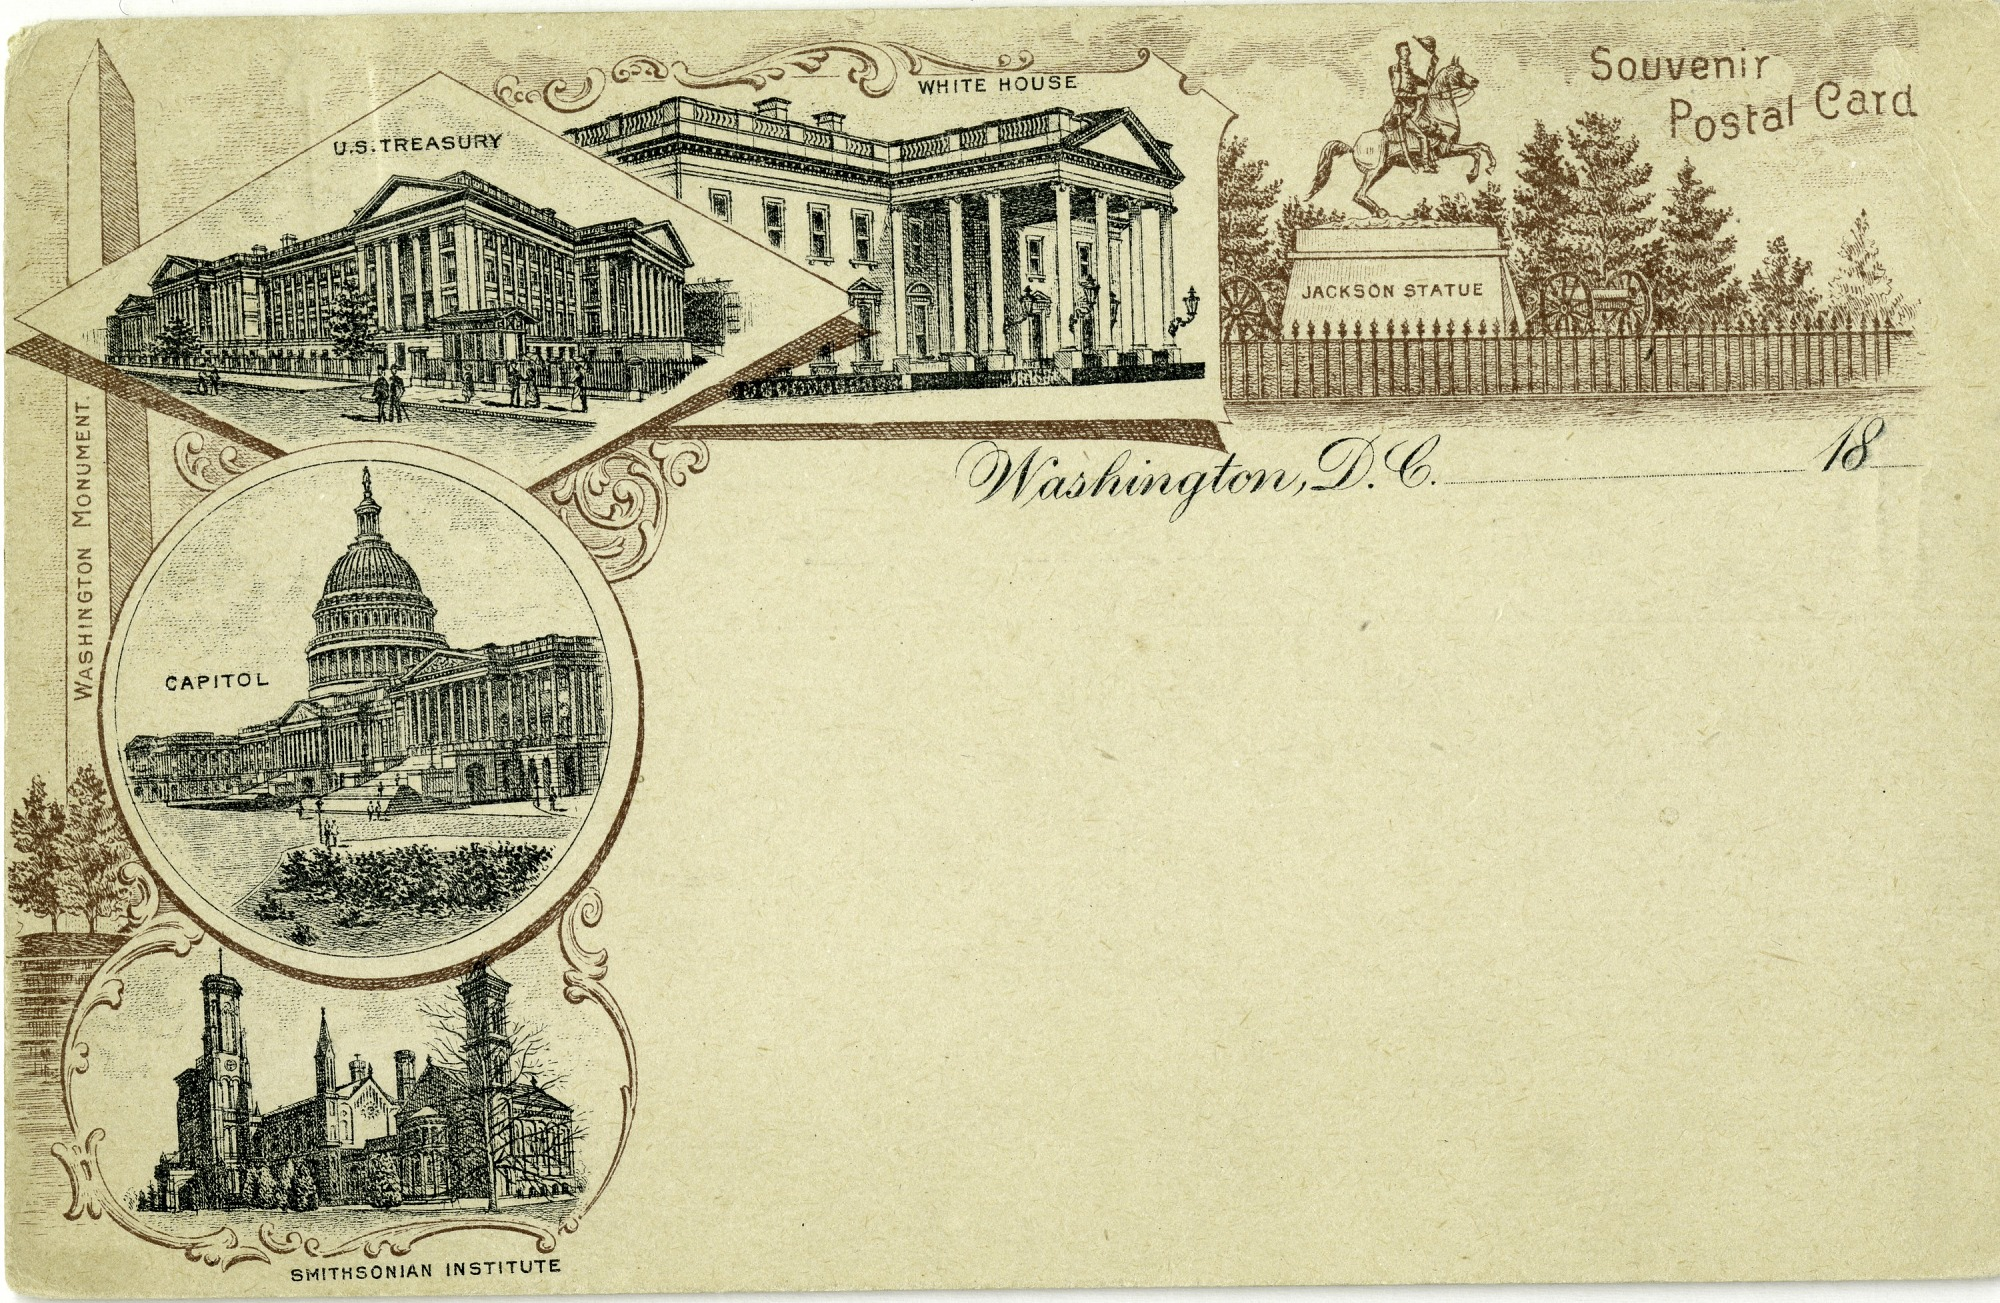 Postcard of Notable Sites in DC